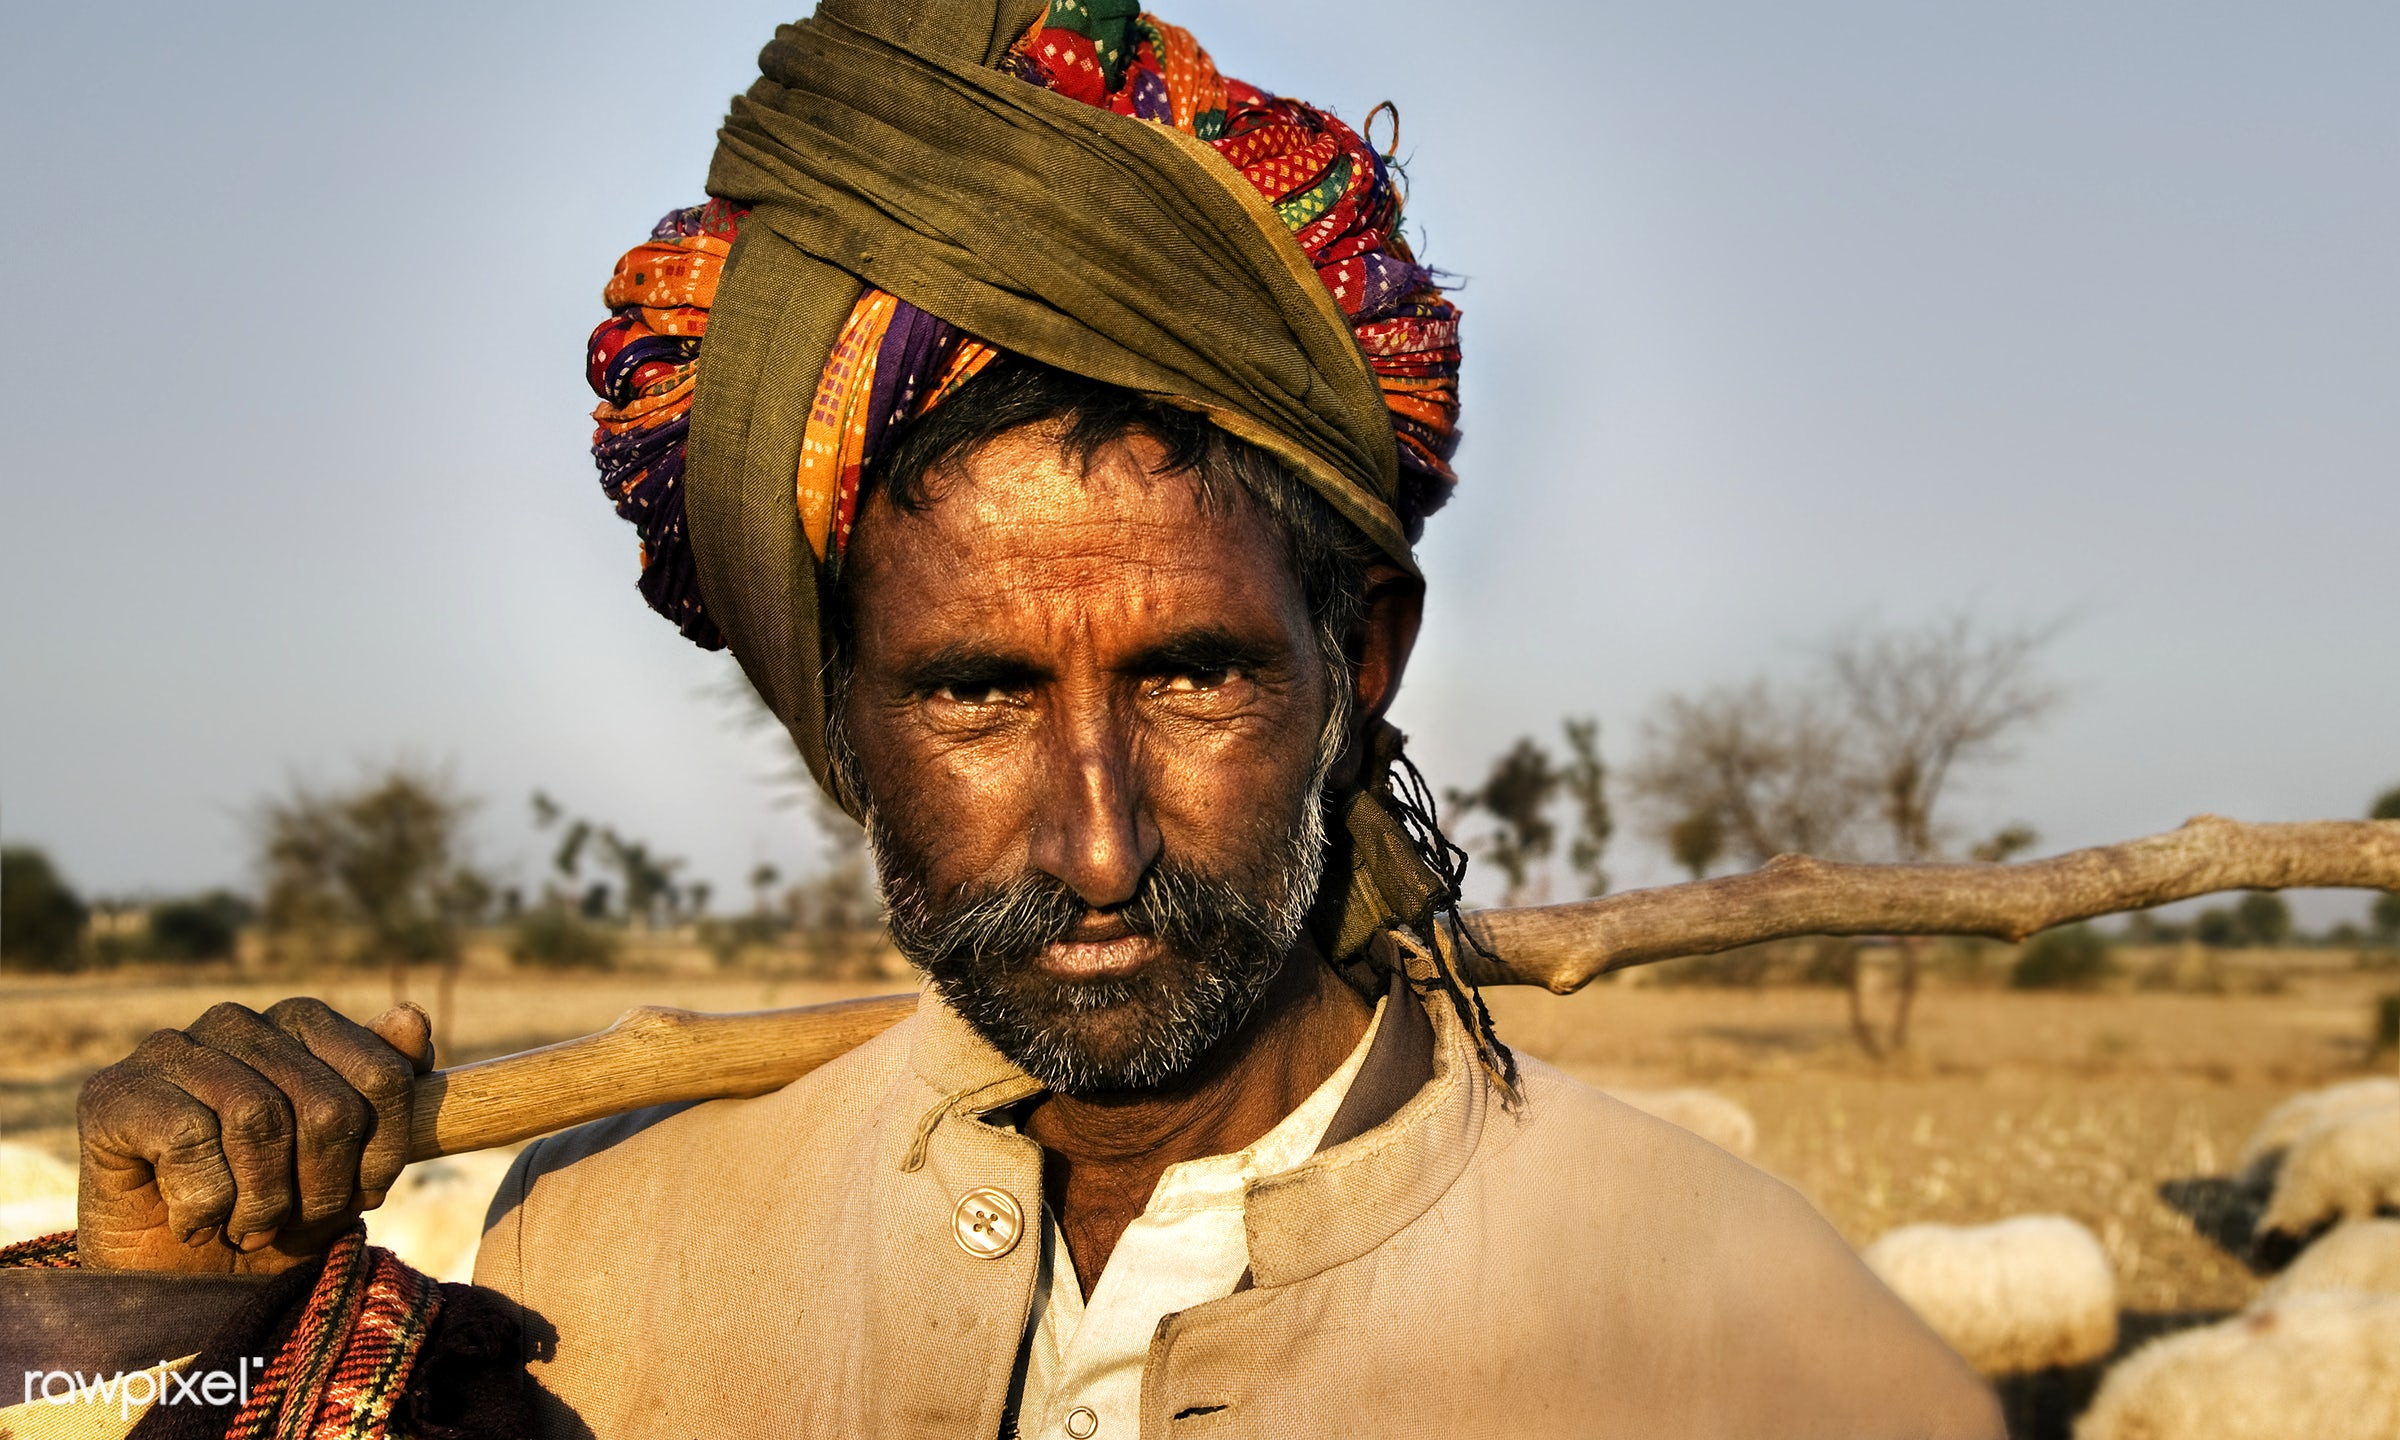 Portrait of an Indian man - agriculture, asia, characters, day, dirty, ethnic, facial hair, farmer, fine art portrait, heat...